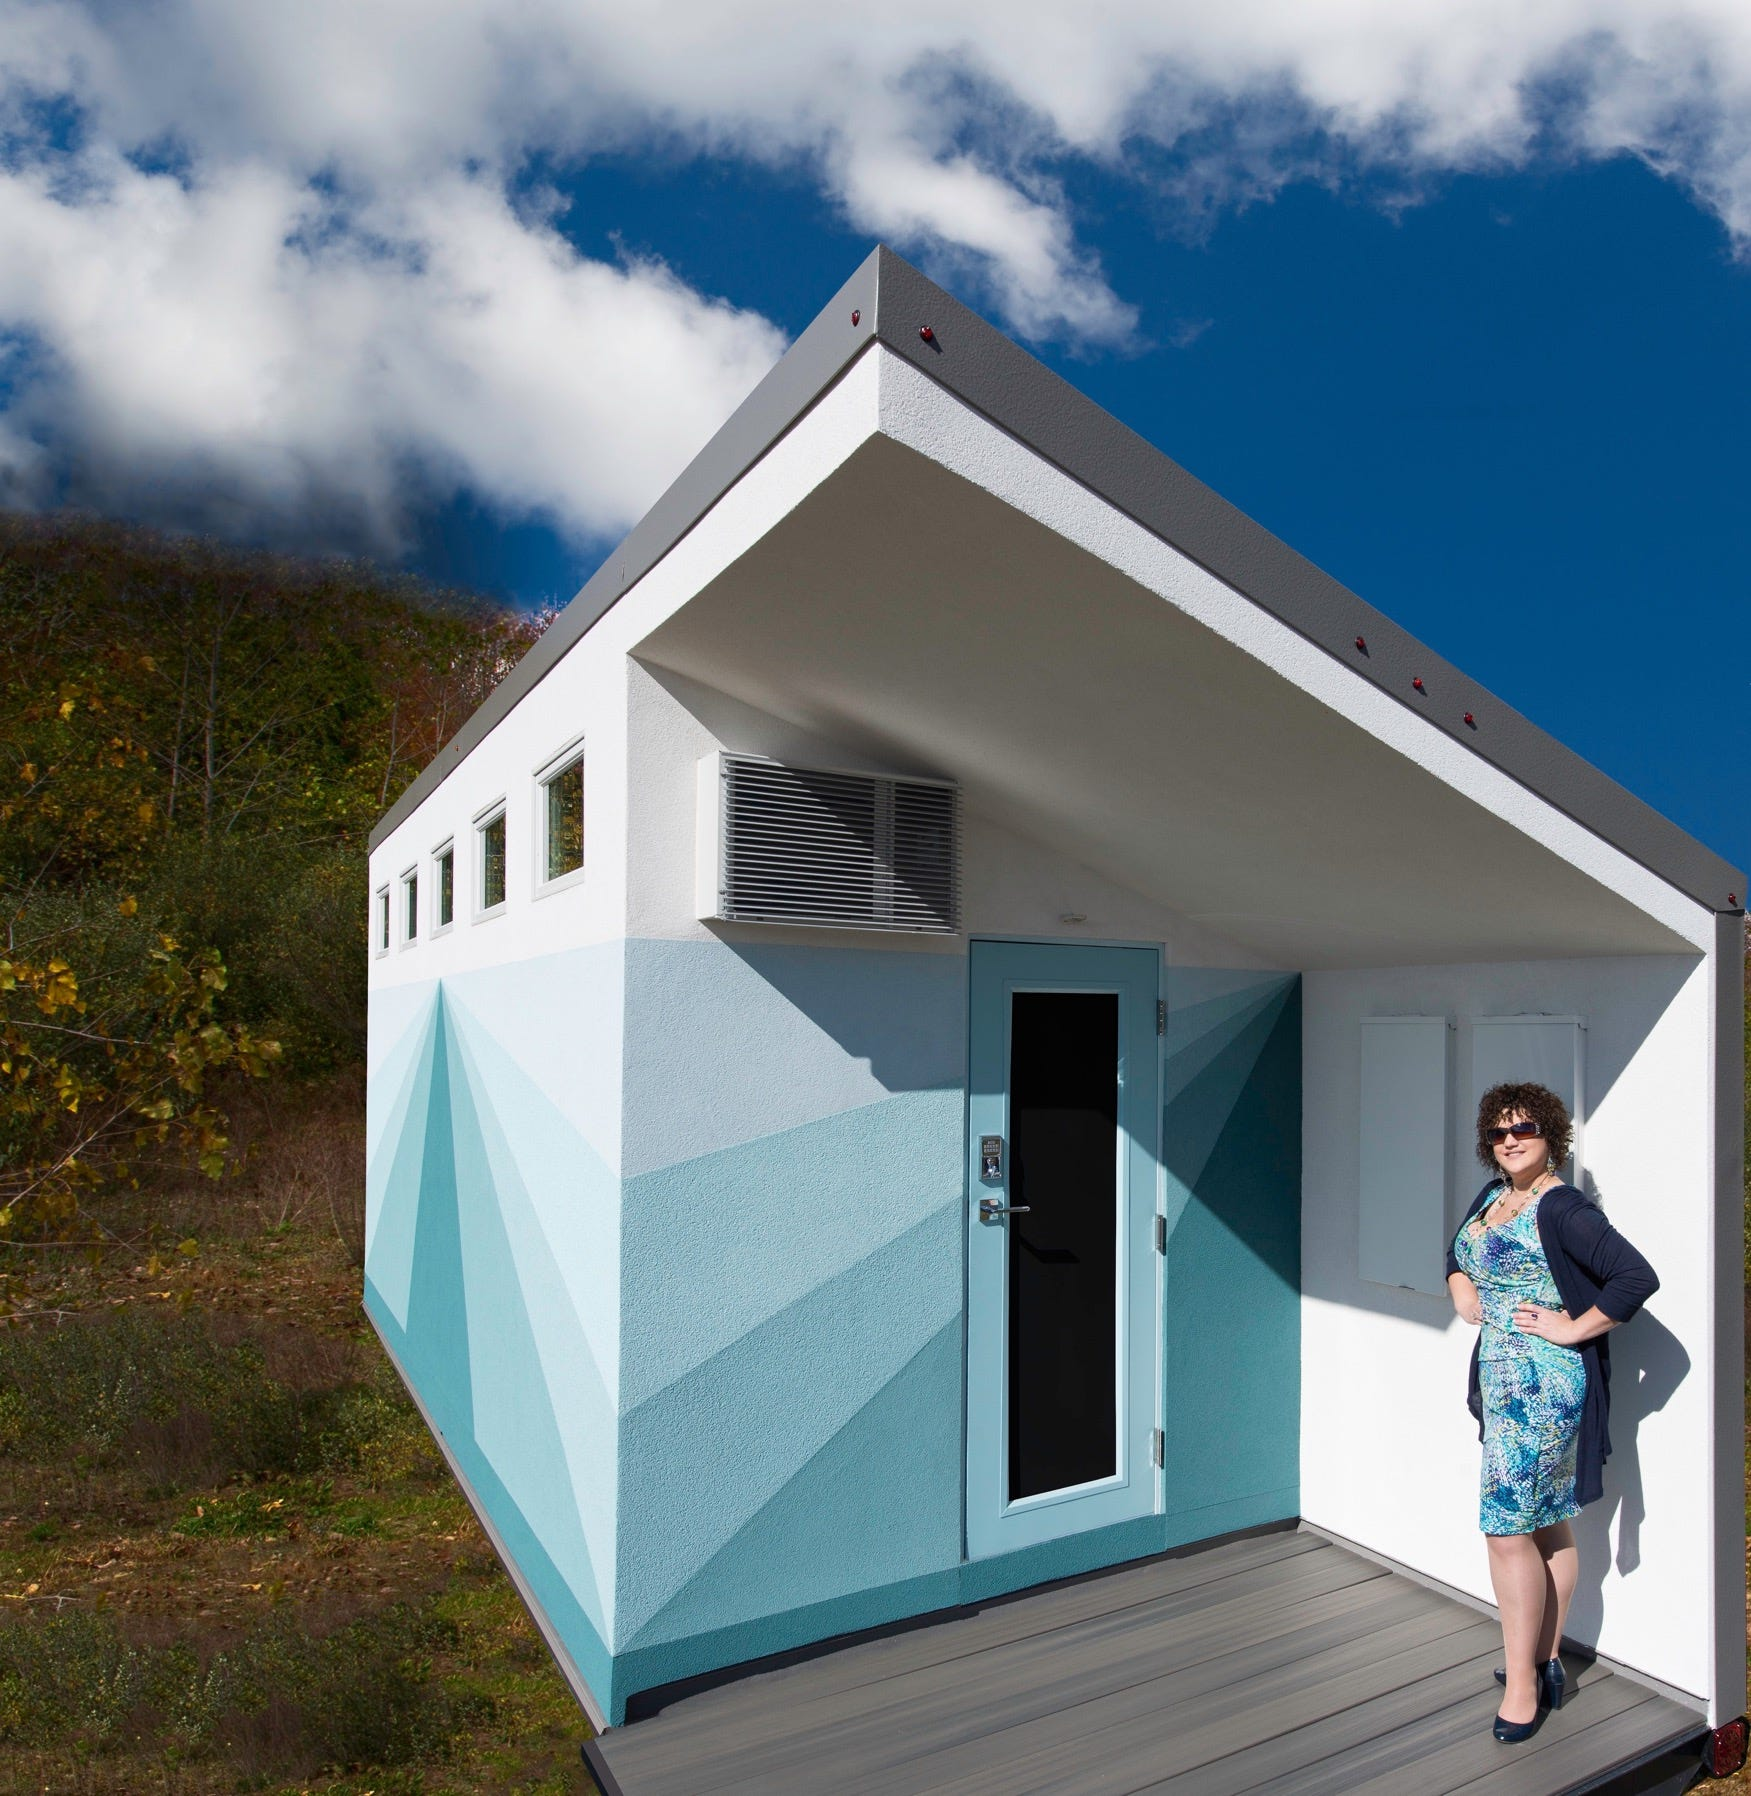 Tiny homes aren't traditional, and neither is their financing